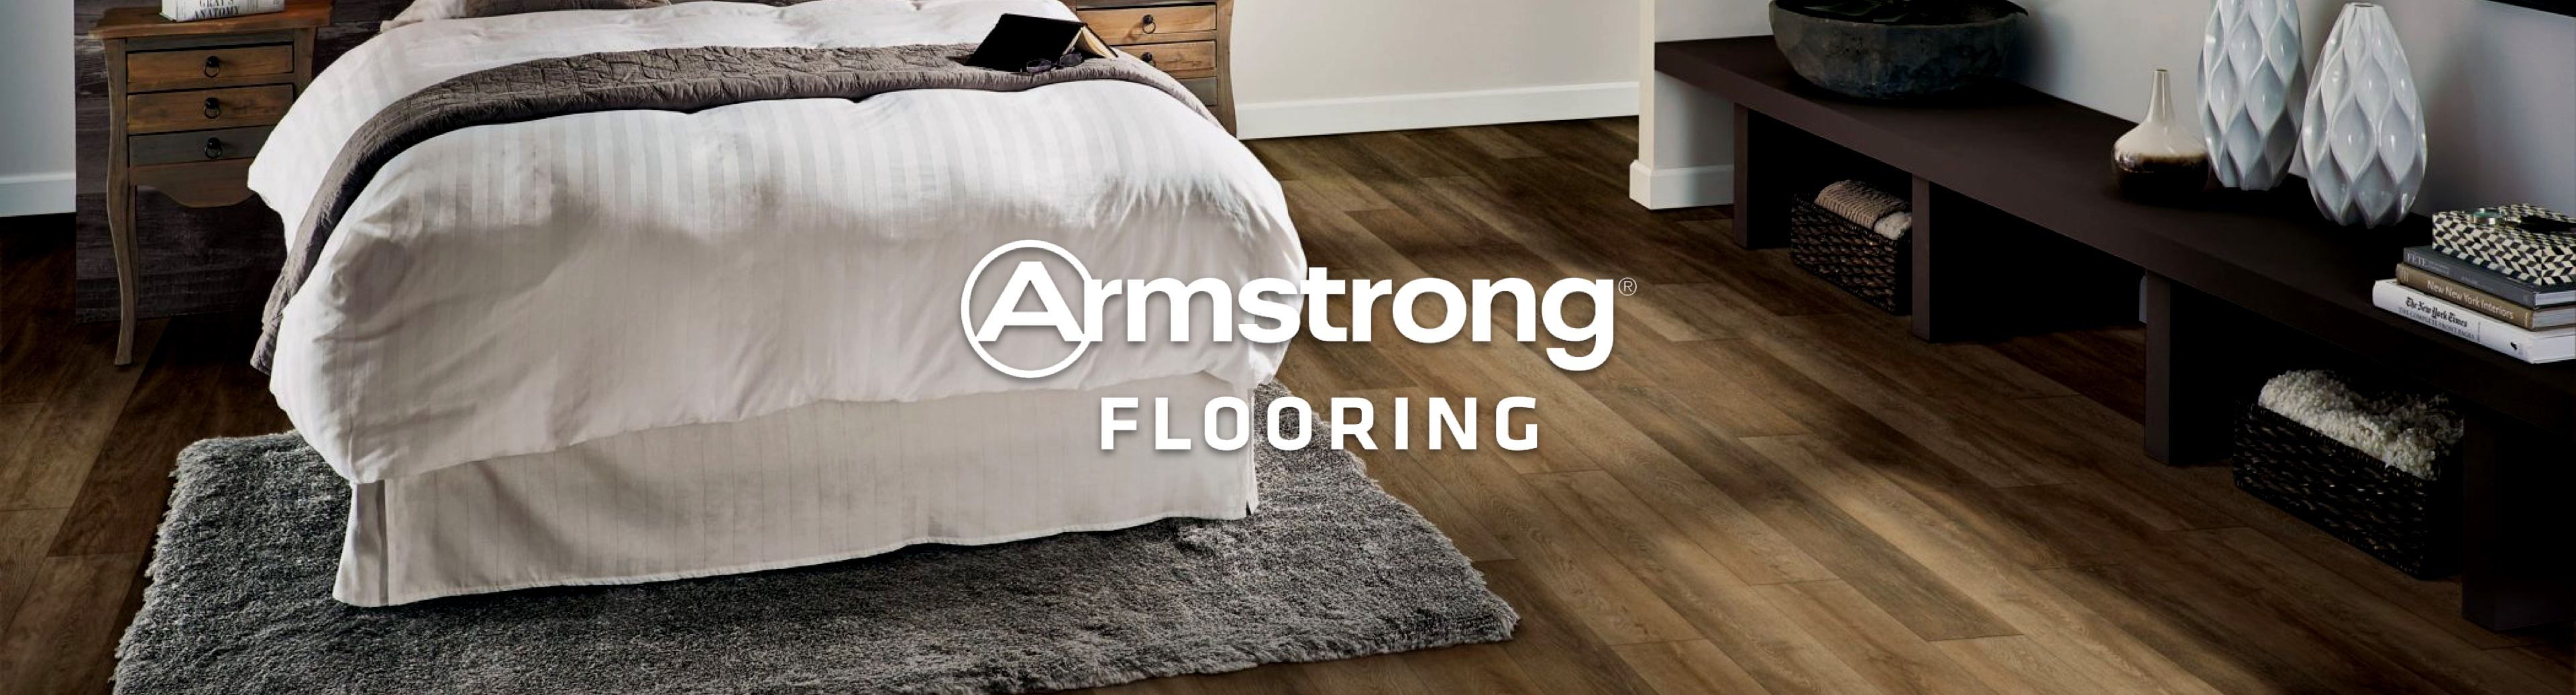 Armstrong Flooring logo with Armstrong Flooring in bedroom